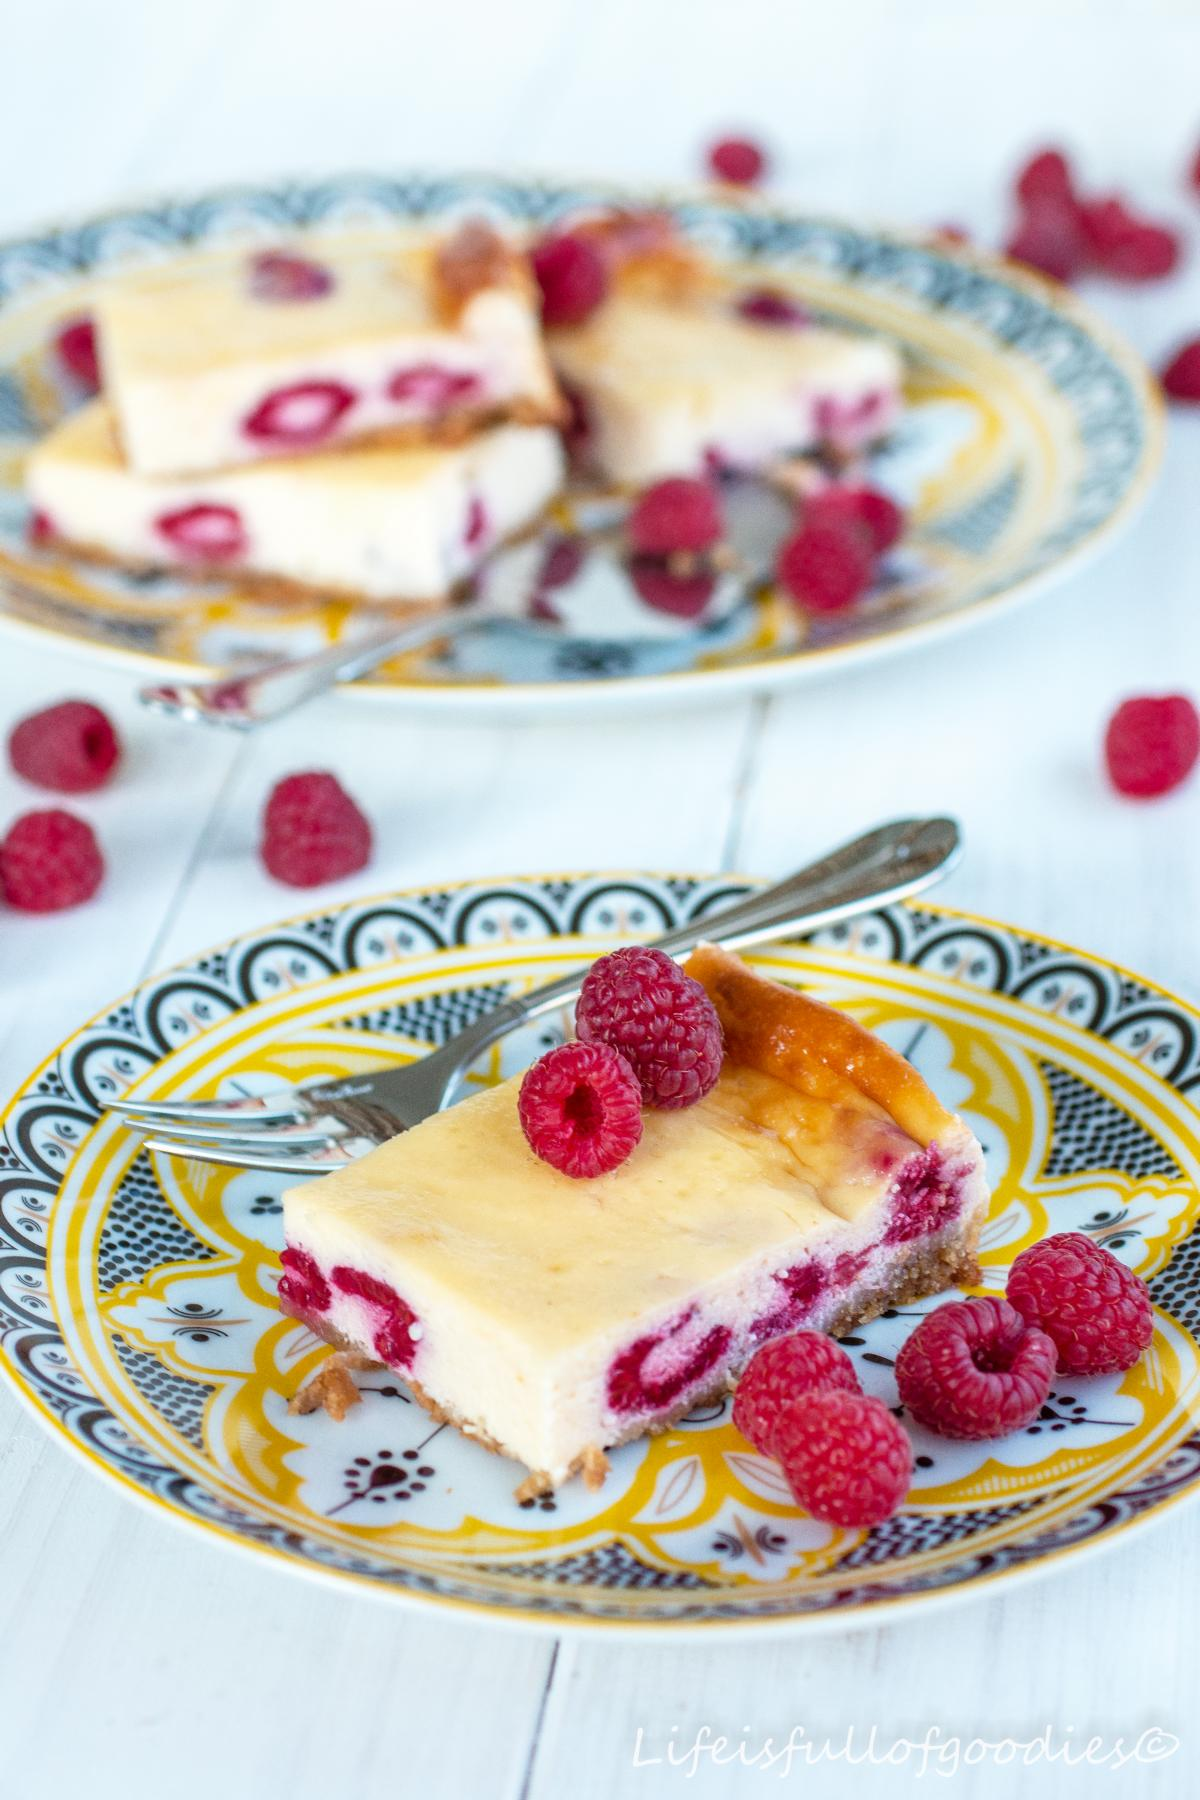 Ricotta Kasekuchen Mit Himbeeren Life Is Full Of Goodies